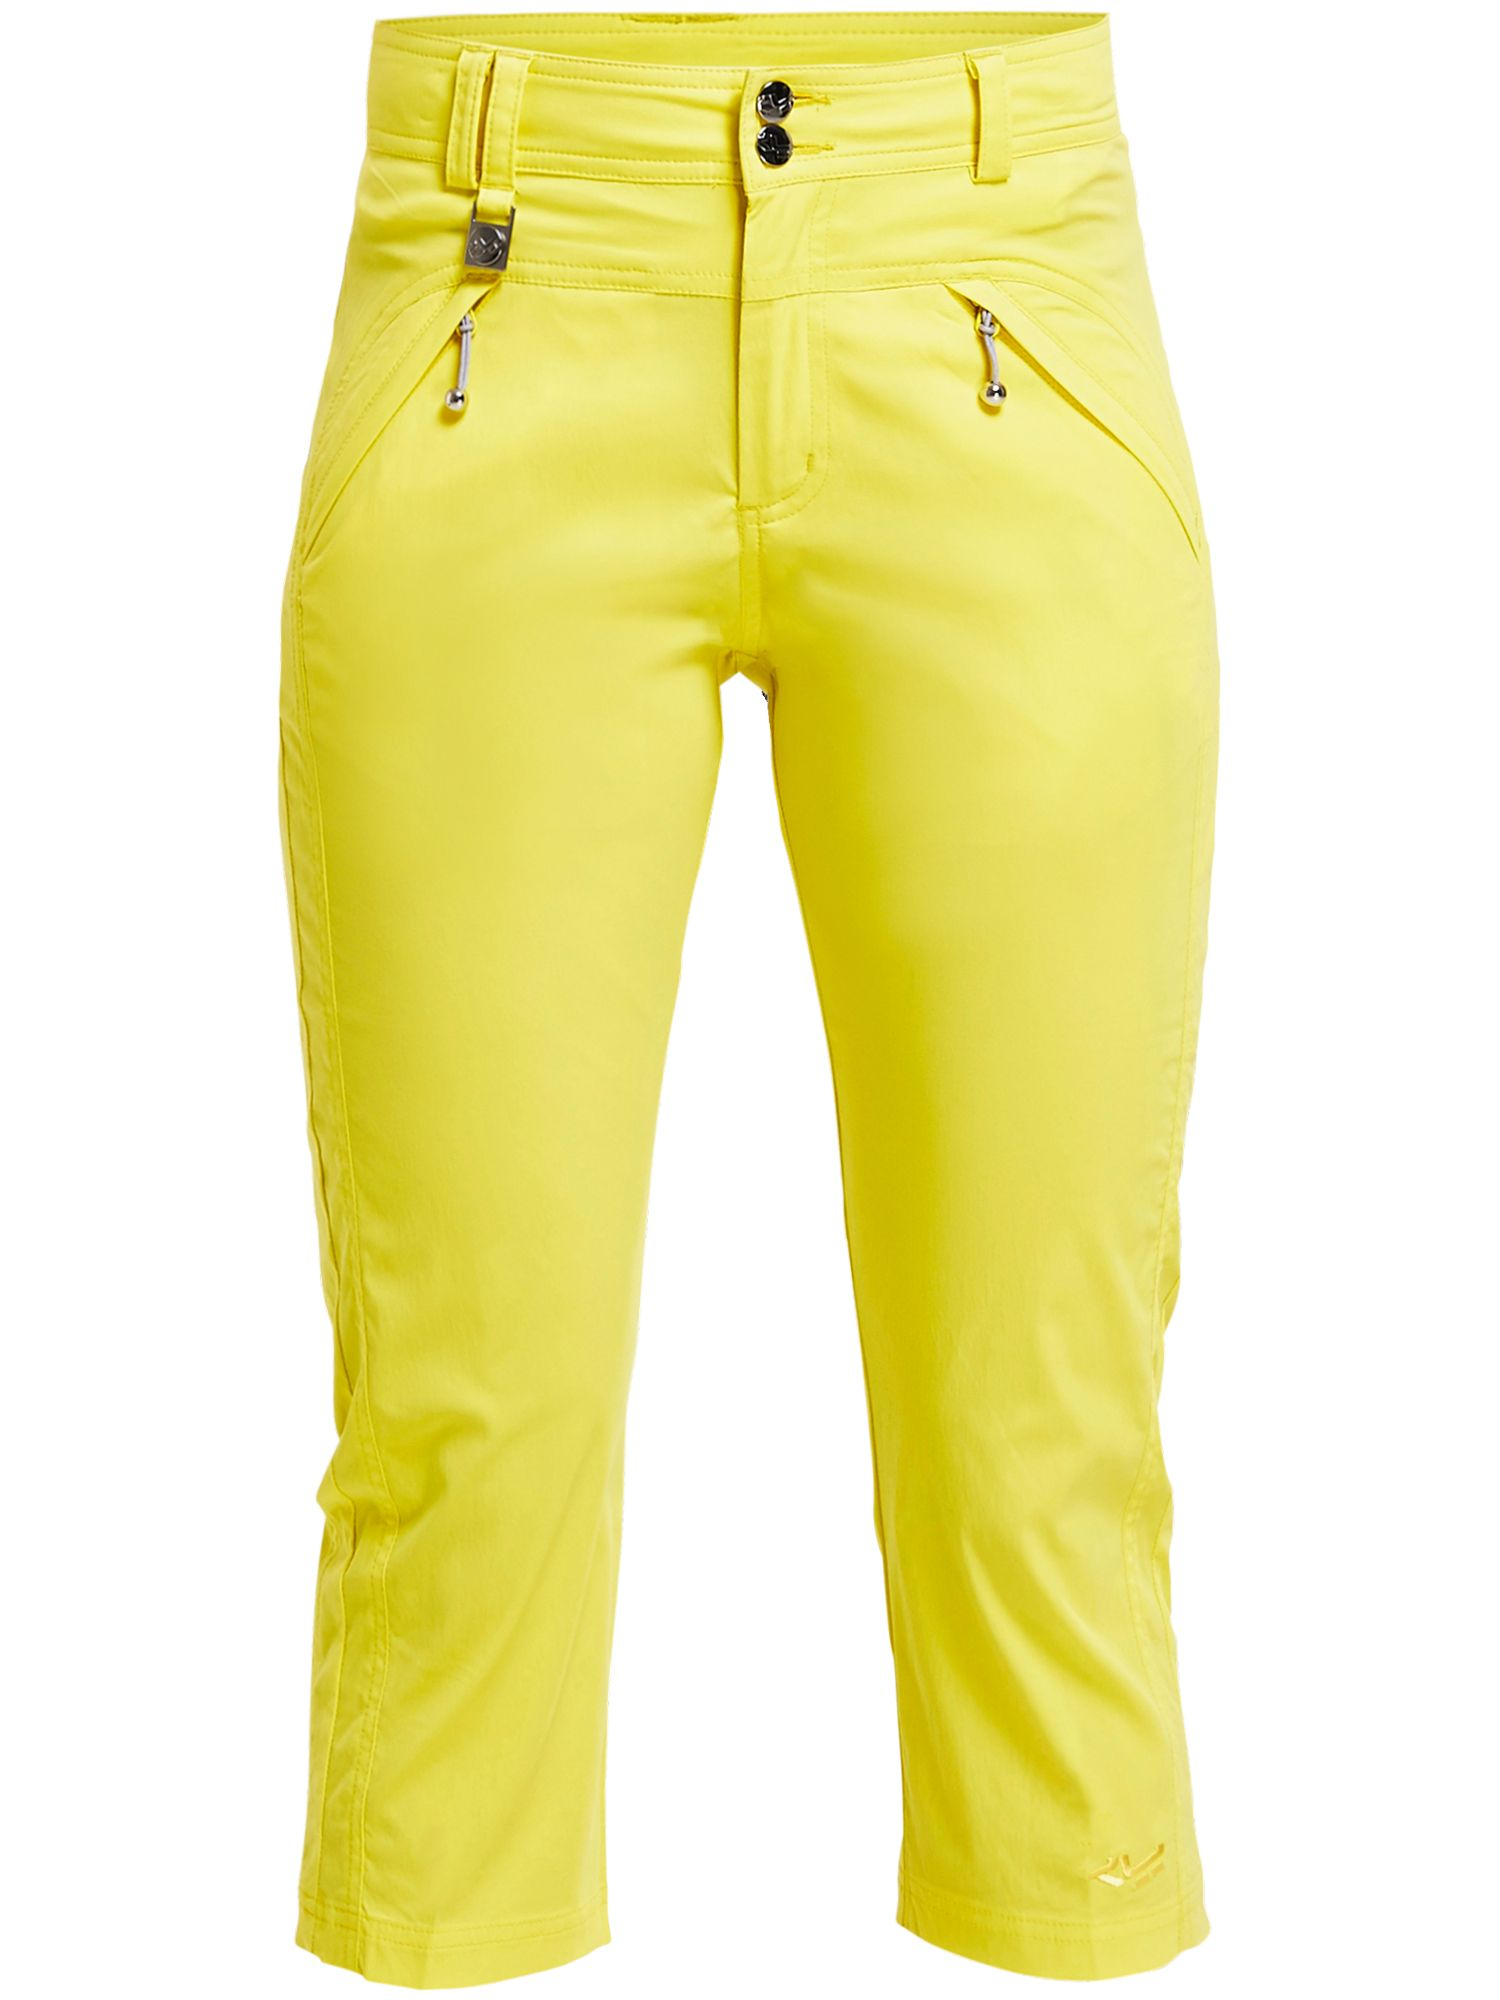 Rohnisch Dey Capri Trousers, Yellow